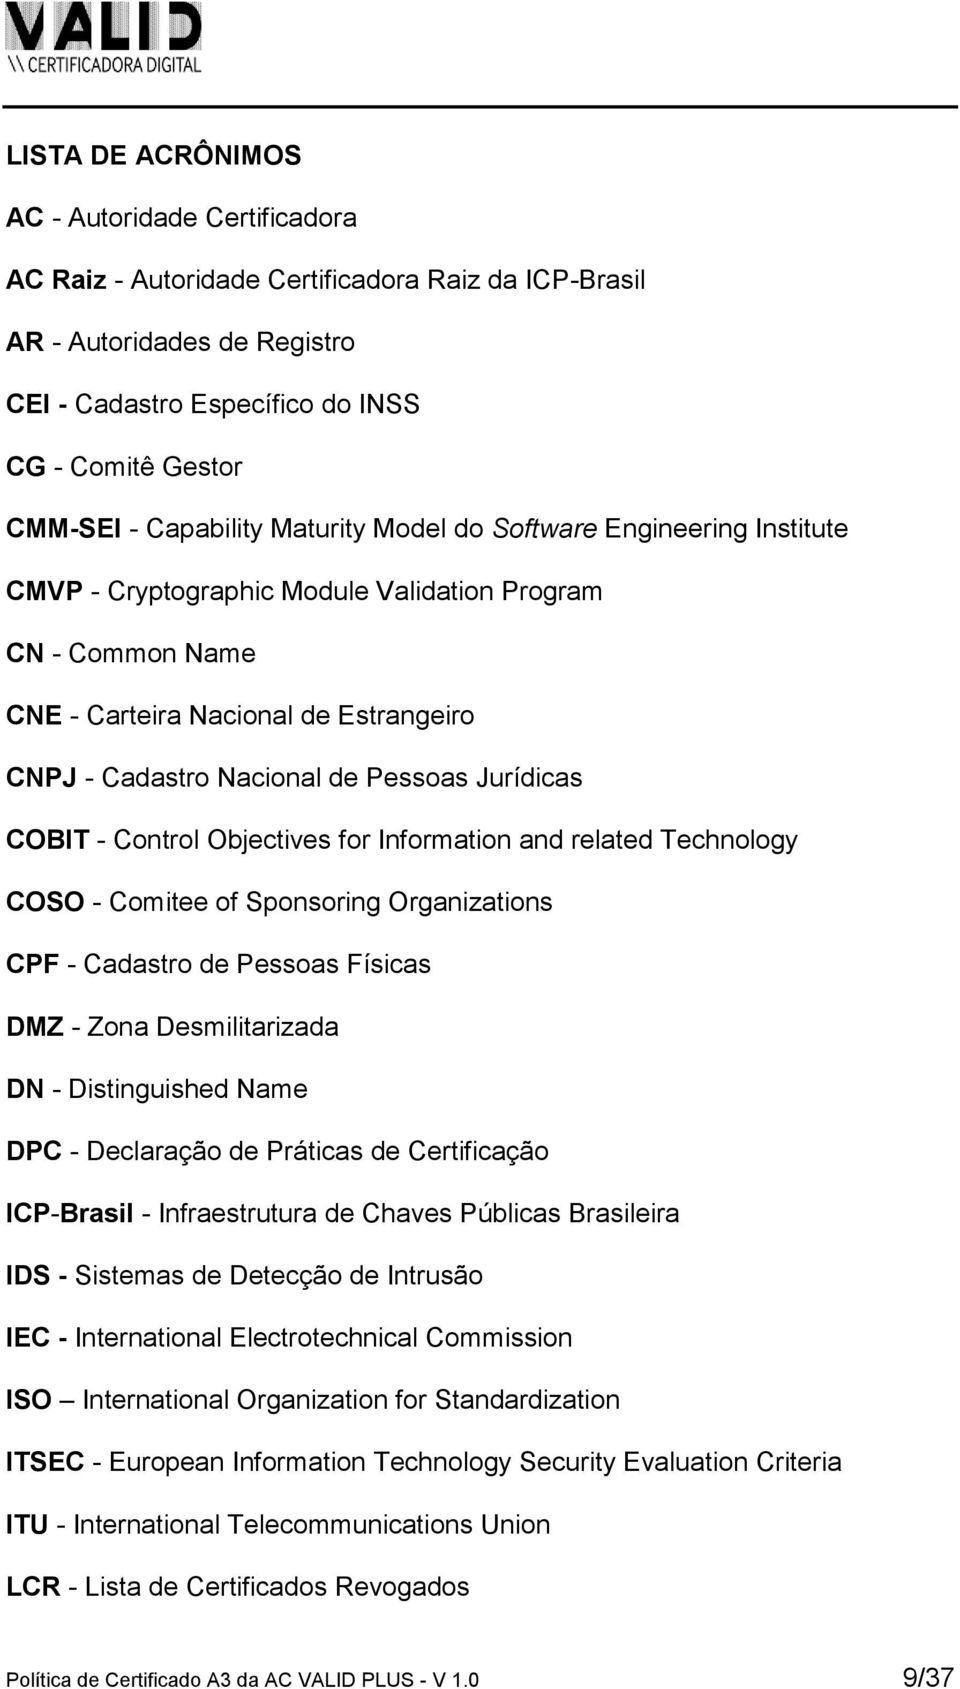 Jurídicas COBIT - Control Objectives for Information and related Technology COSO - Comitee of Sponsoring Organizations CPF - Cadastro de Pessoas Físicas DMZ - Zona Desmilitarizada DN - Distinguished